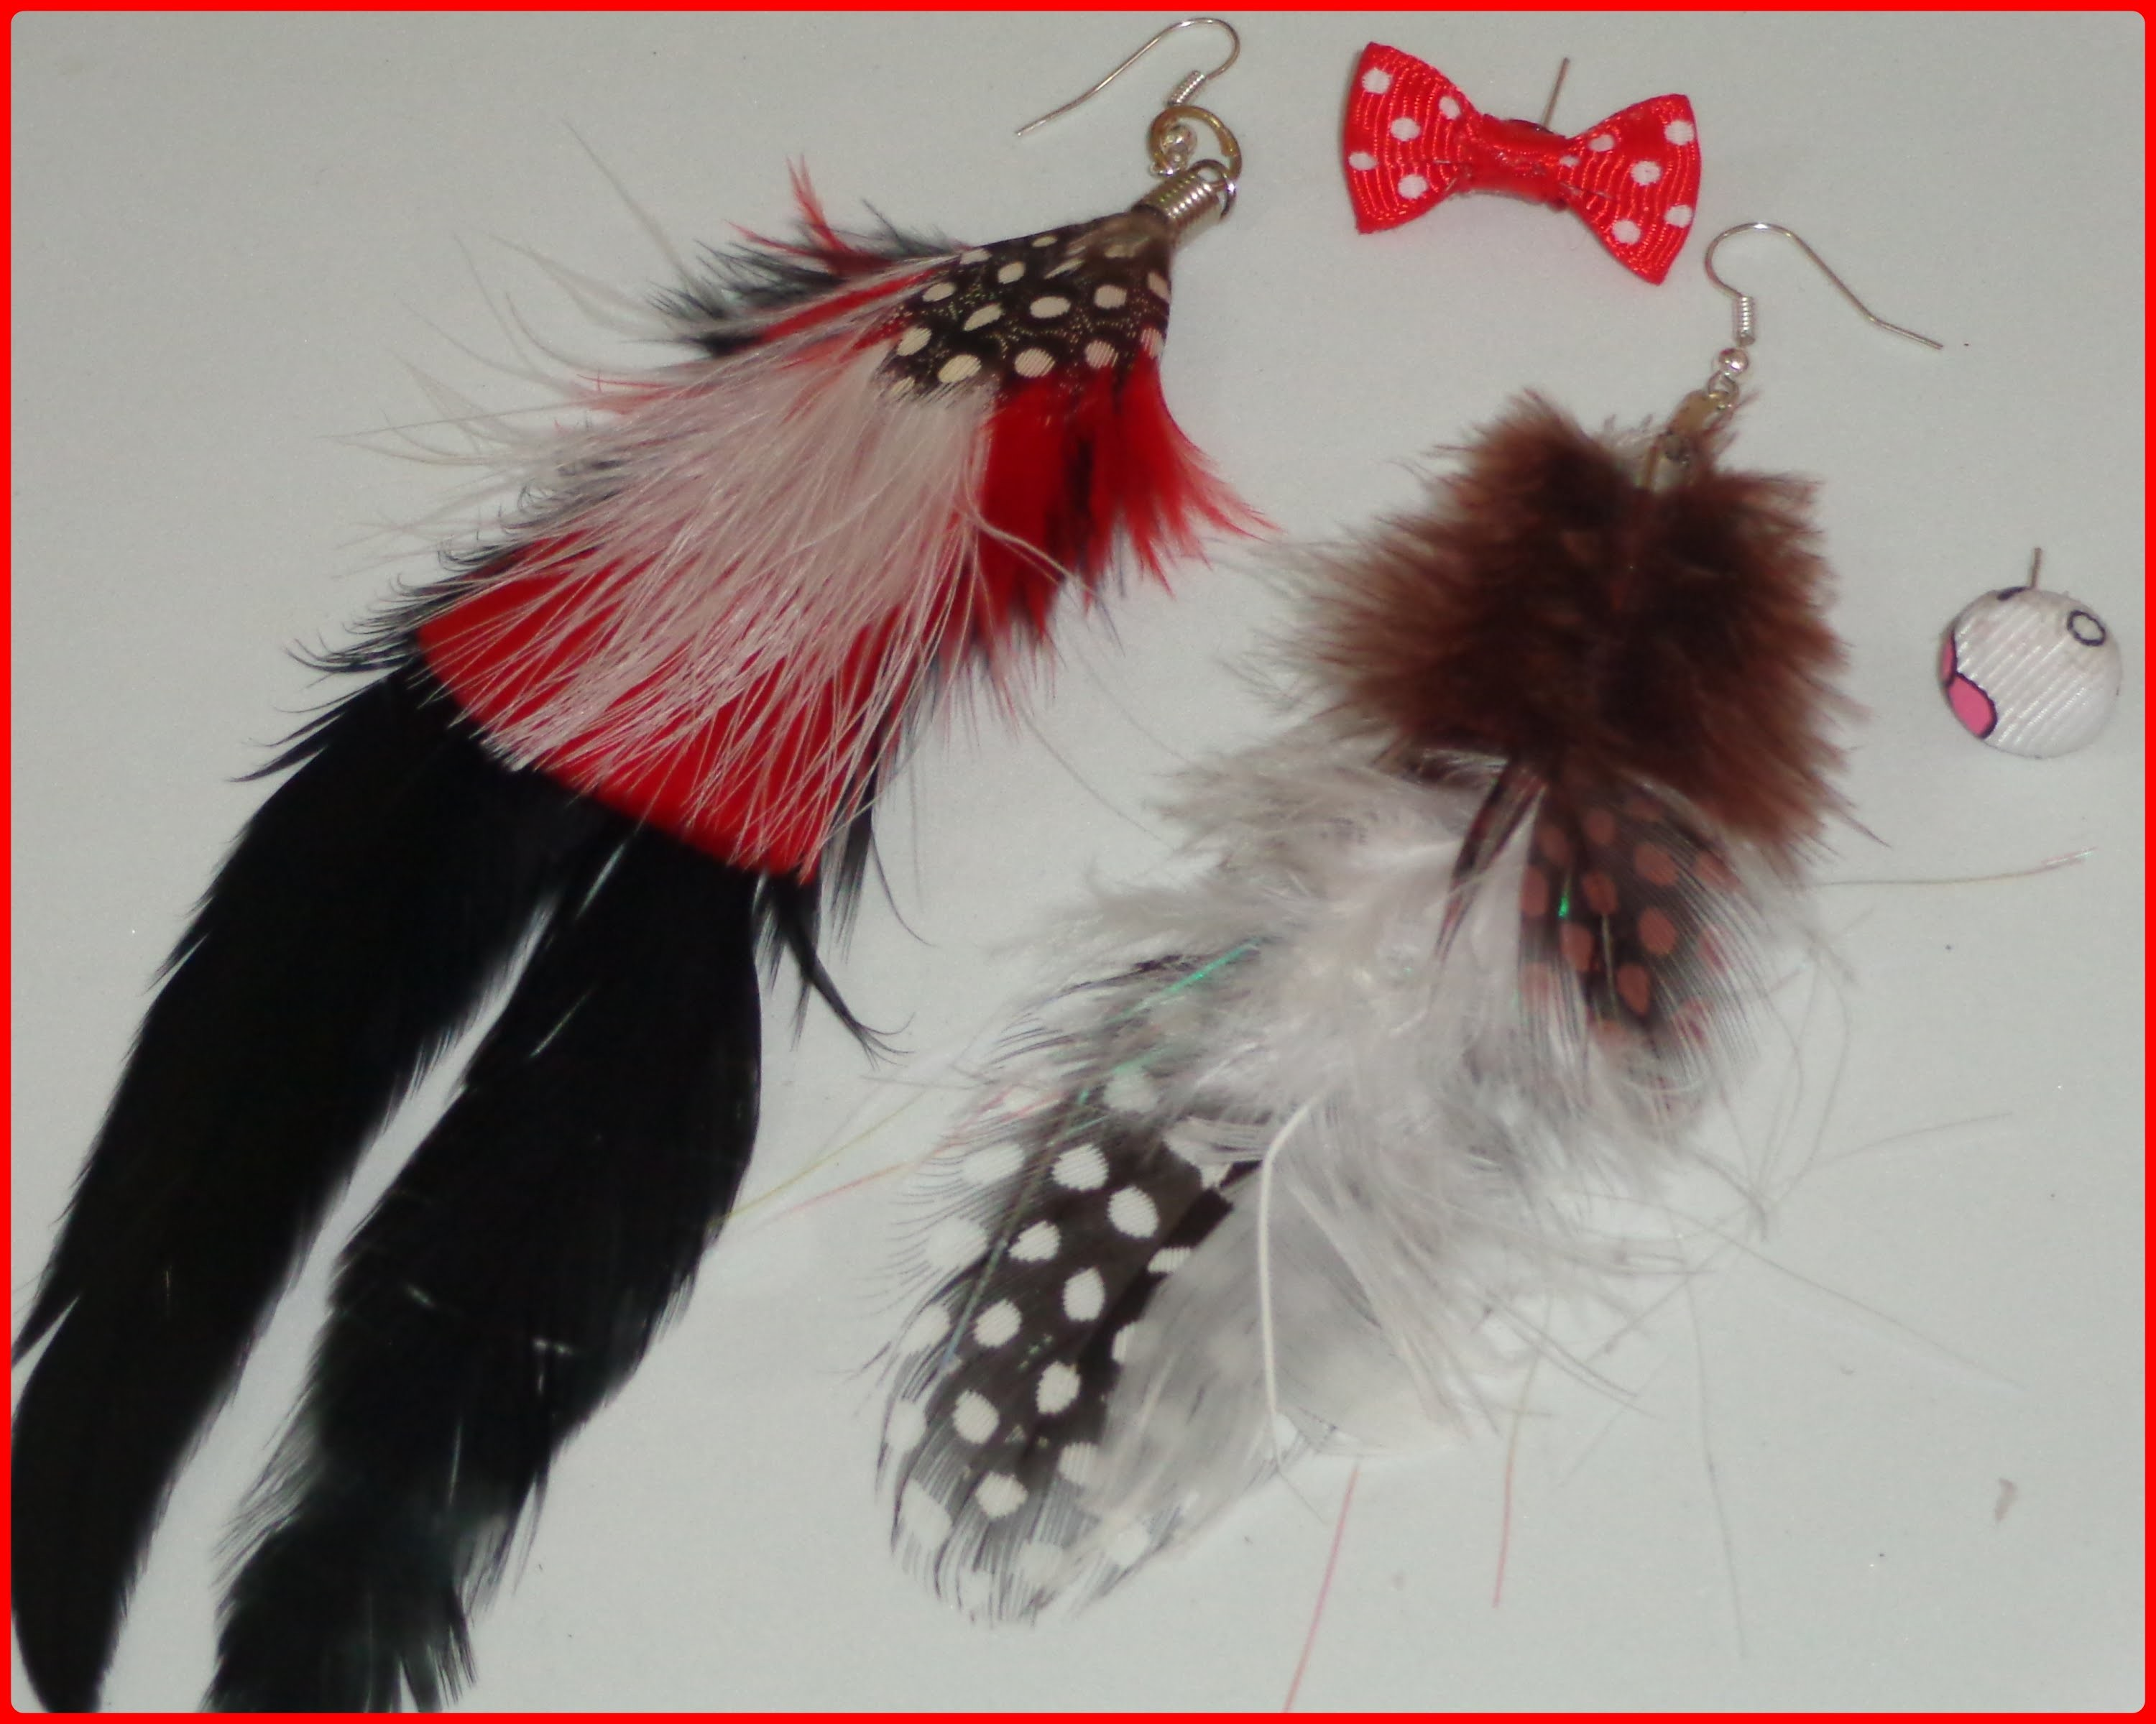 Paso a paso de como hacer aretes con  plumas,step by step how to make feather earrings